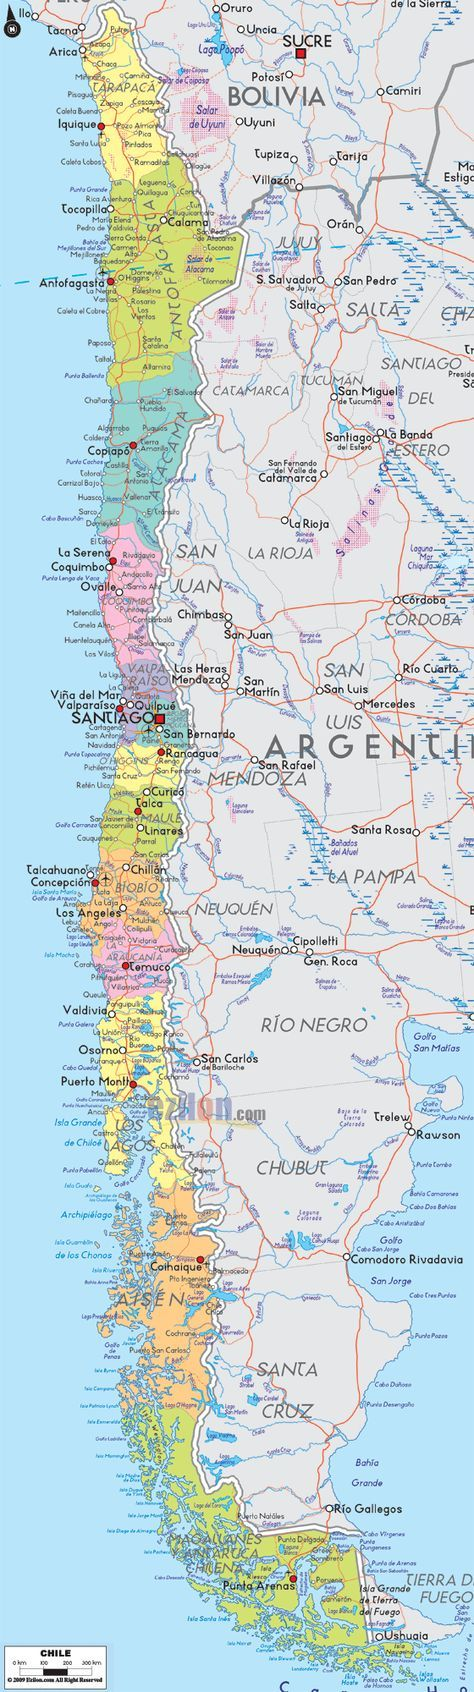 Chile Political Map of Chile